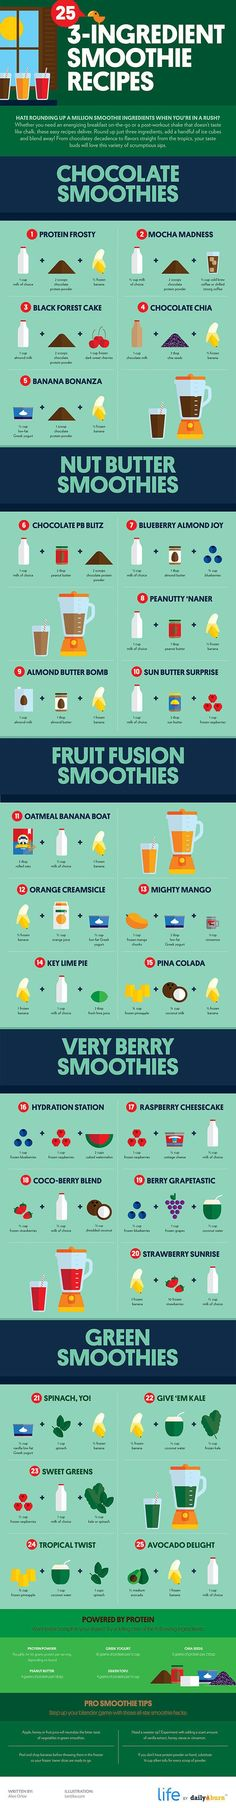 See more here ► https://www.youtube.com/watch?v=__Gi8cvdquw Tags: quickest weight loss diets, quick weight loss meal plan, fastest way lose weight quick - 3-ingredient smoothies are so easy to whip up for a healthy breakfast